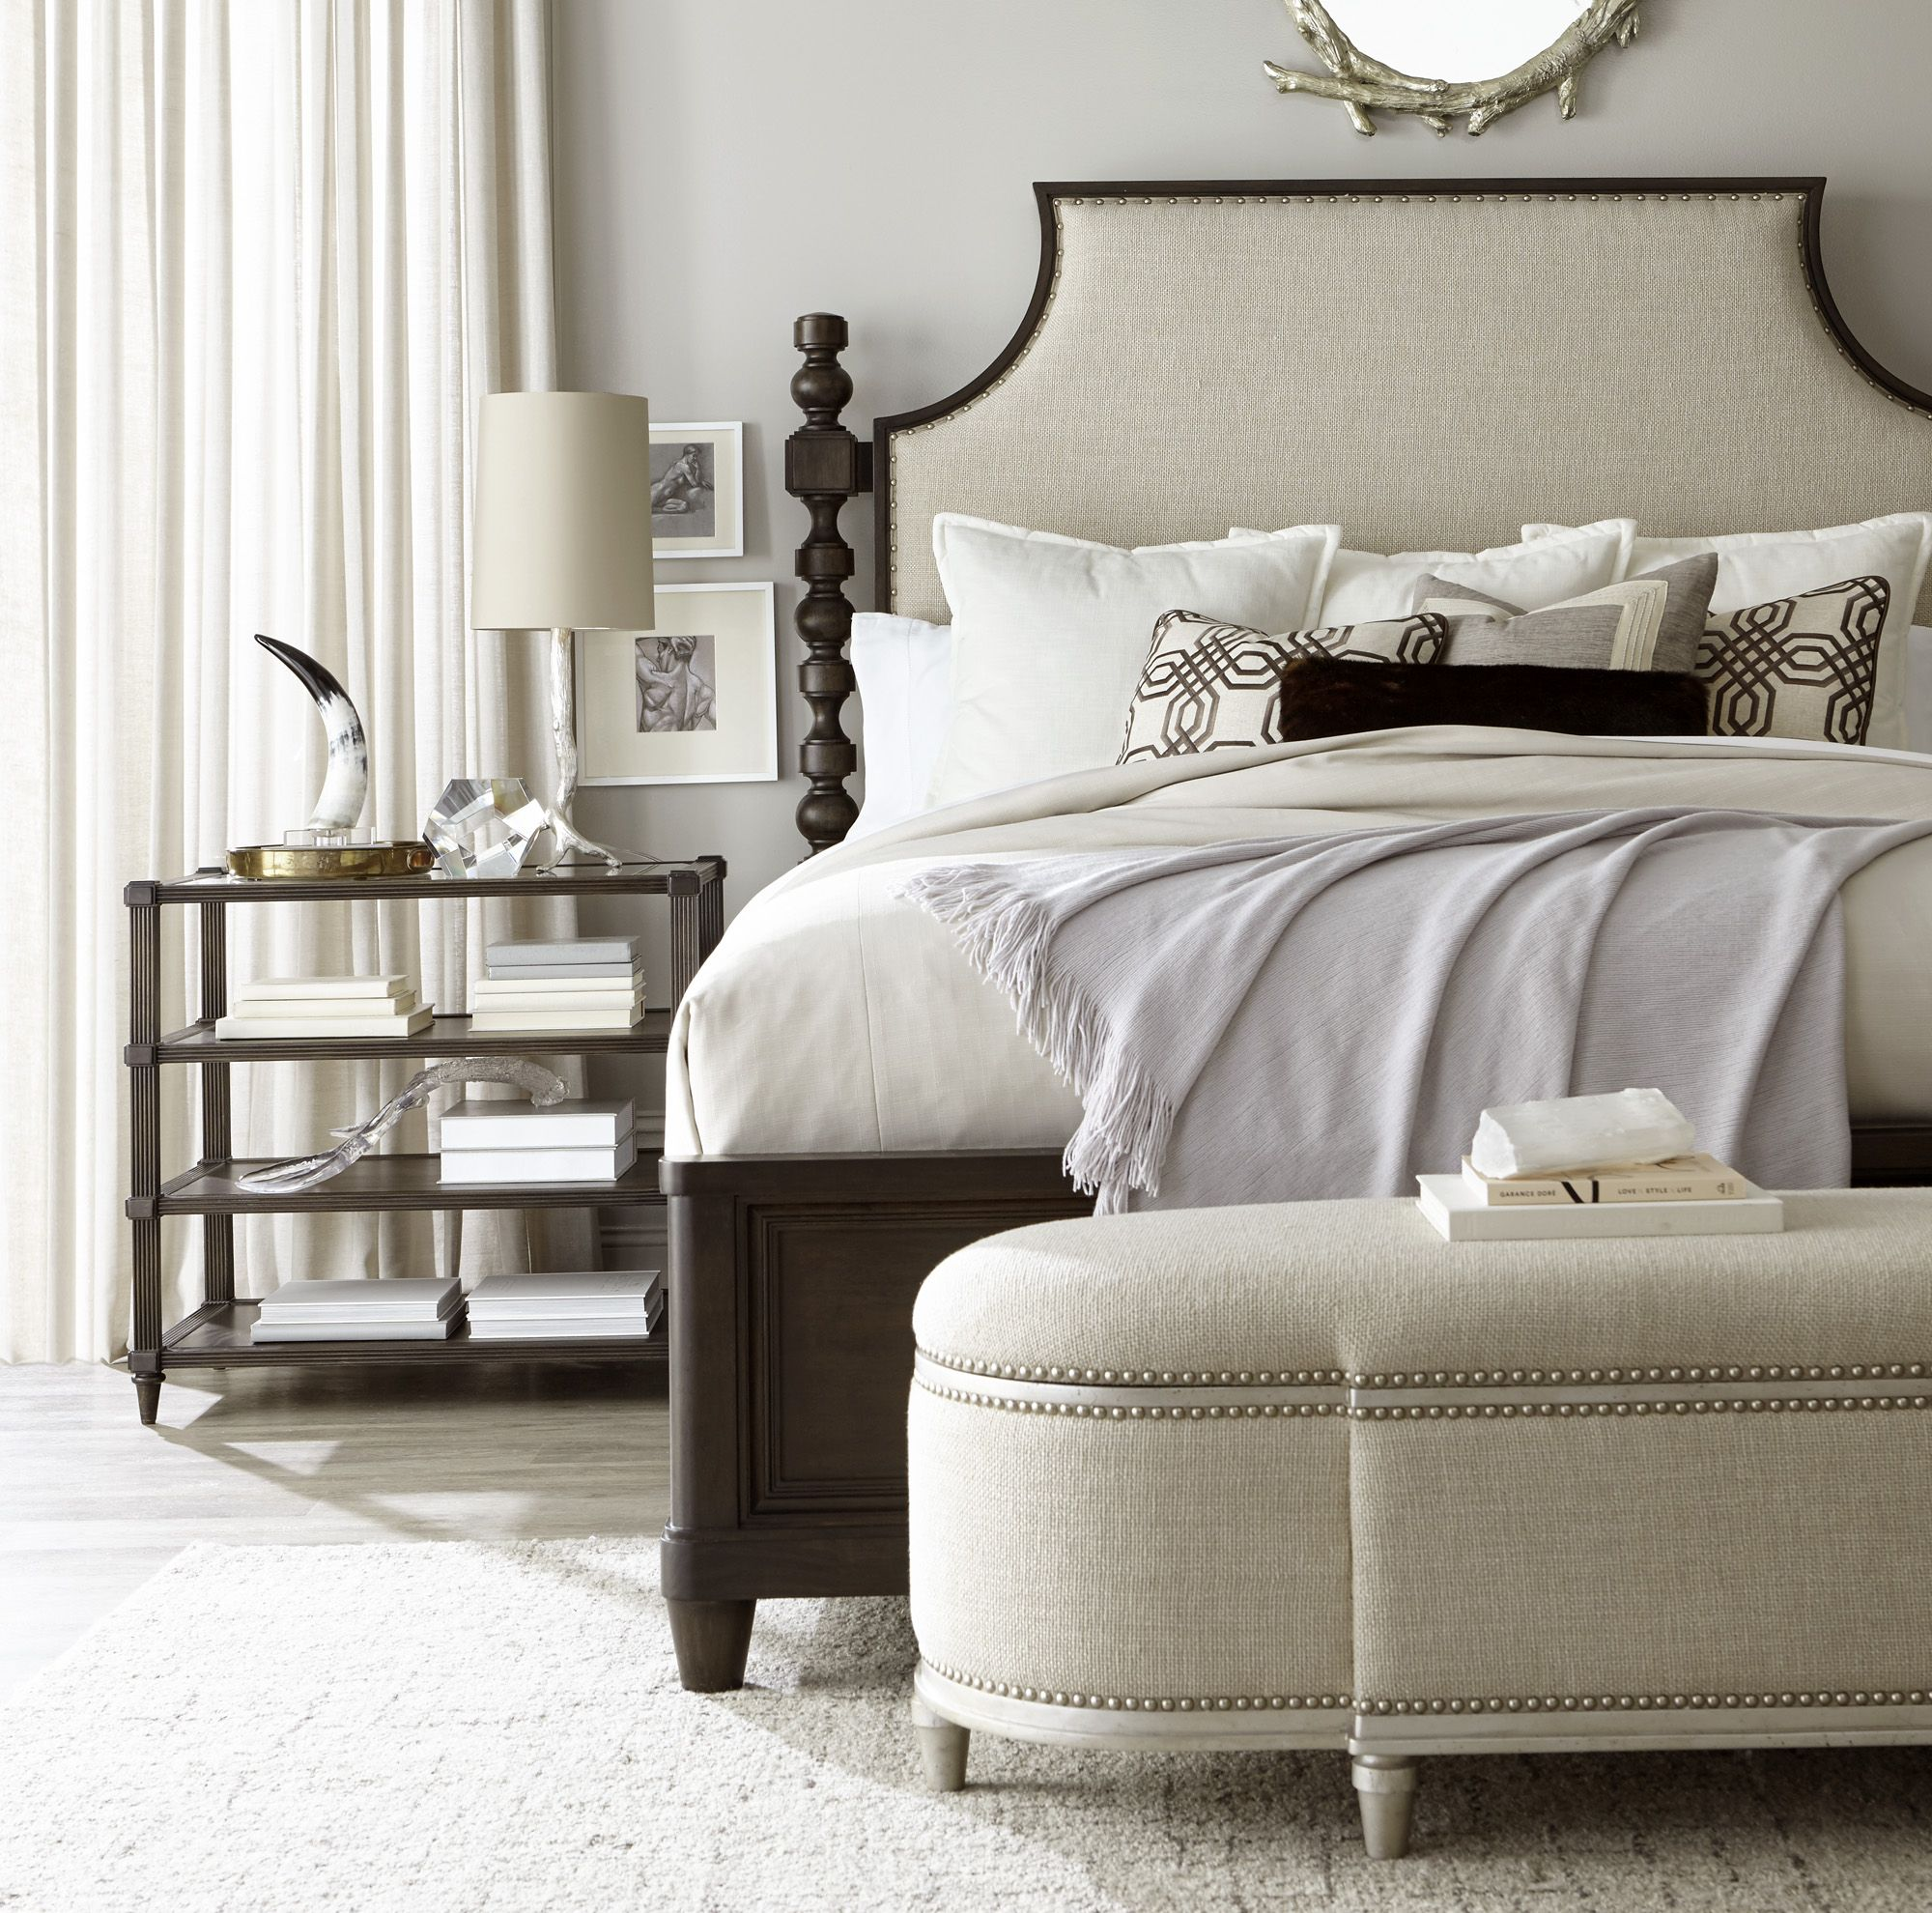 Morrissey Healy Upholstered Panel Bed with the Ellman Book